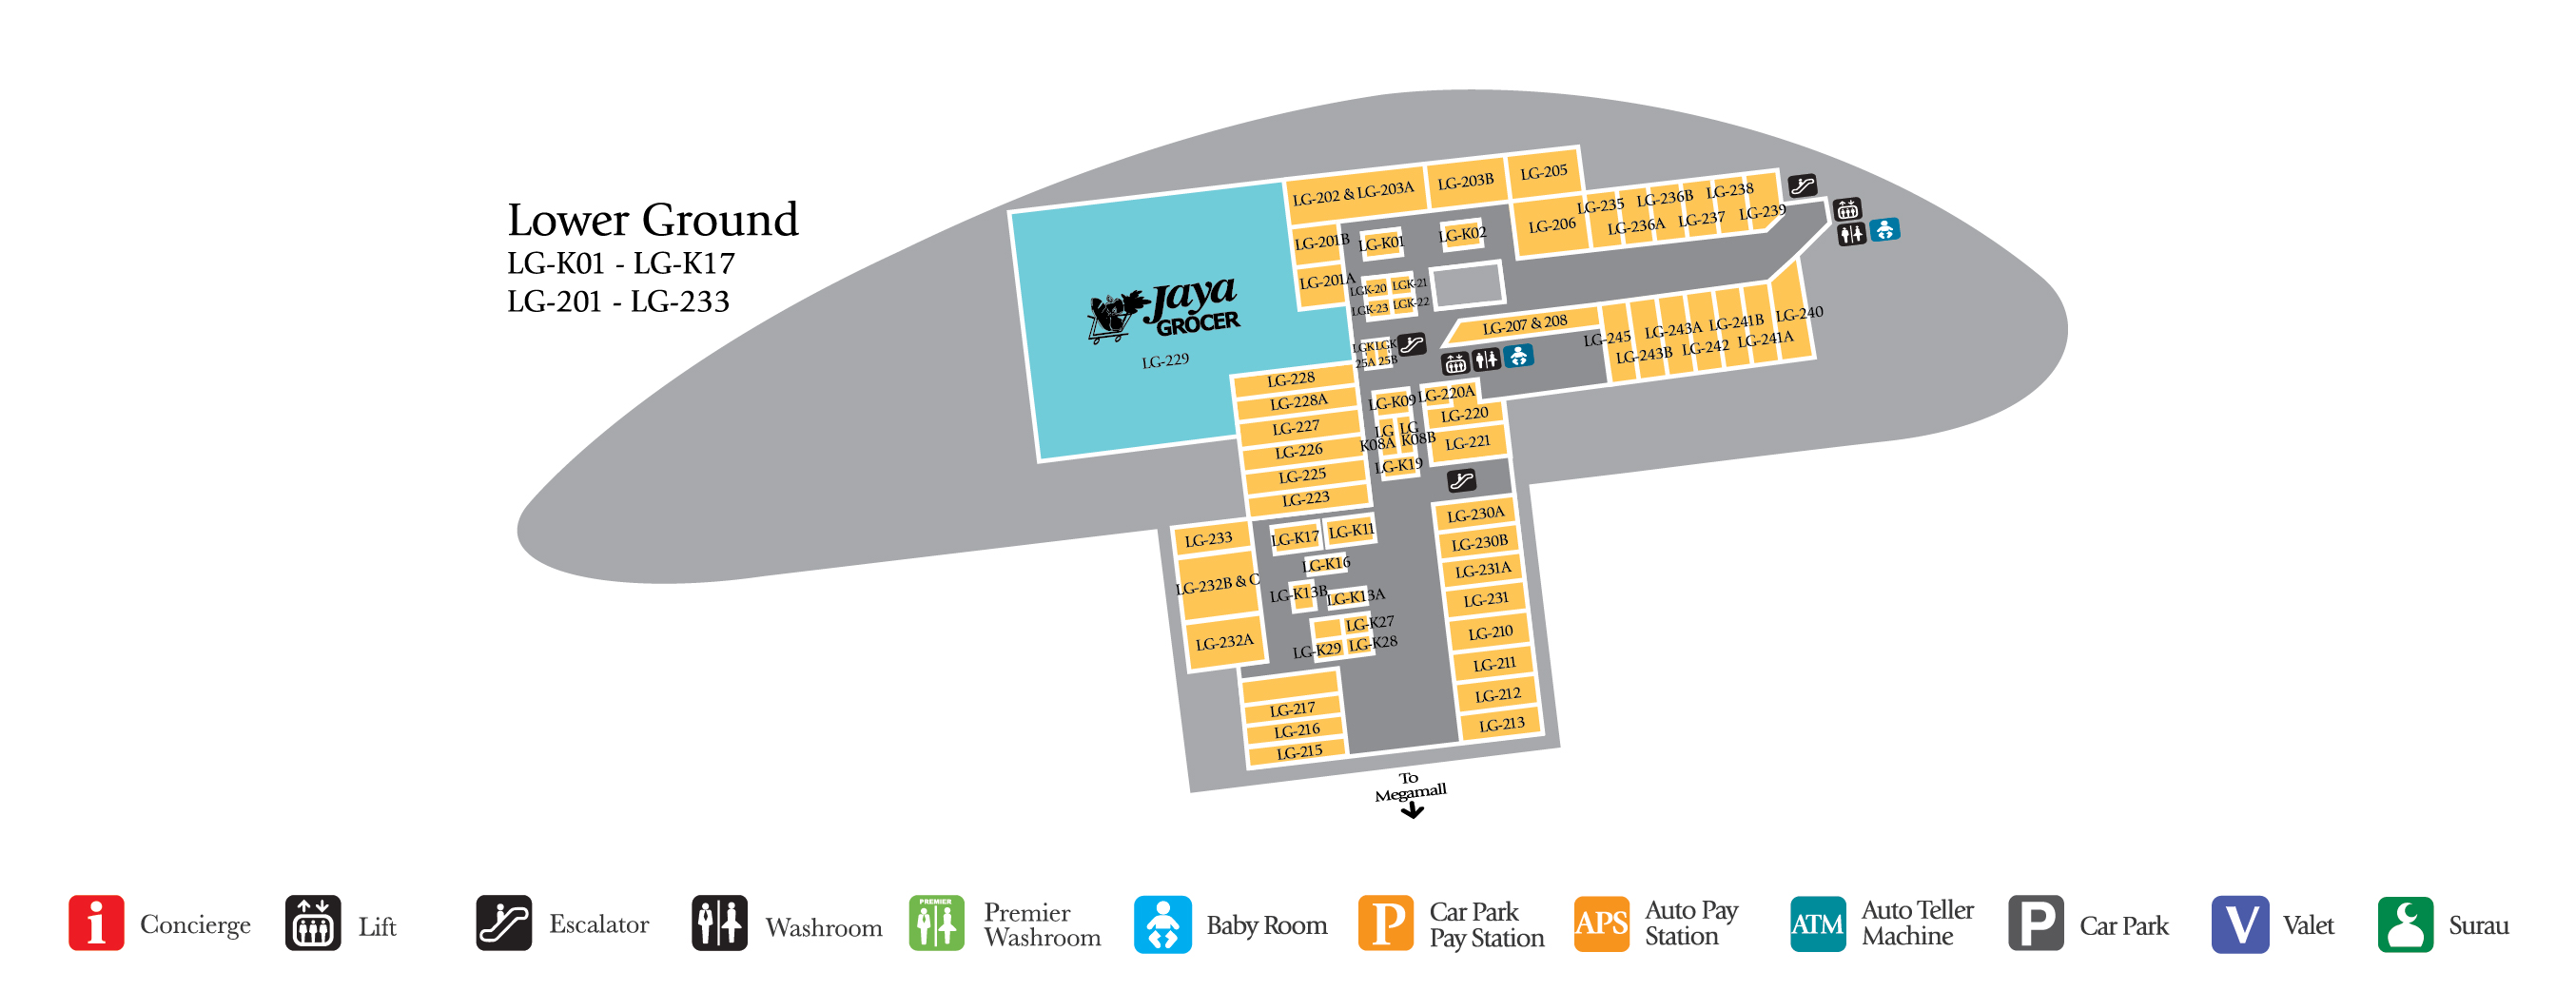 The Gardens Mall Floor Plan 4